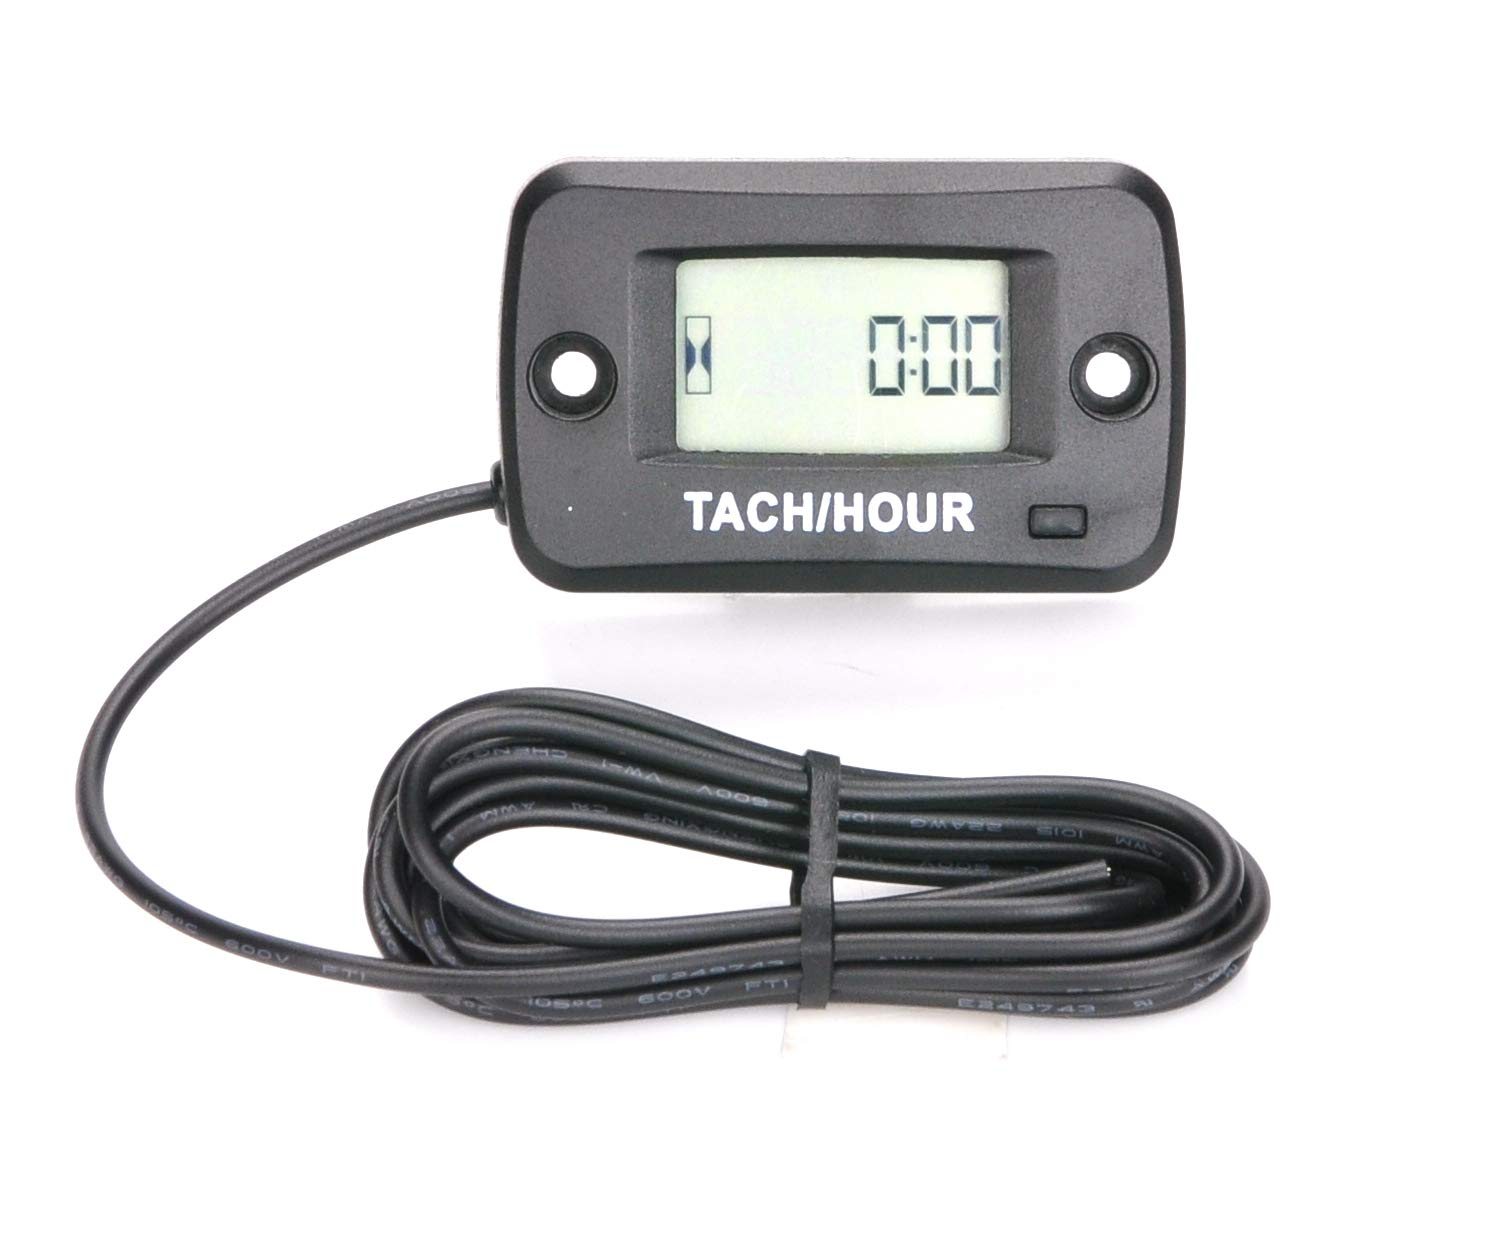 Digital LCD Waterproof gasoline engine hour meter Tachometer Maintenance meter for Paramotors,Chainsaws,Generators,Mowesr,Model Boats